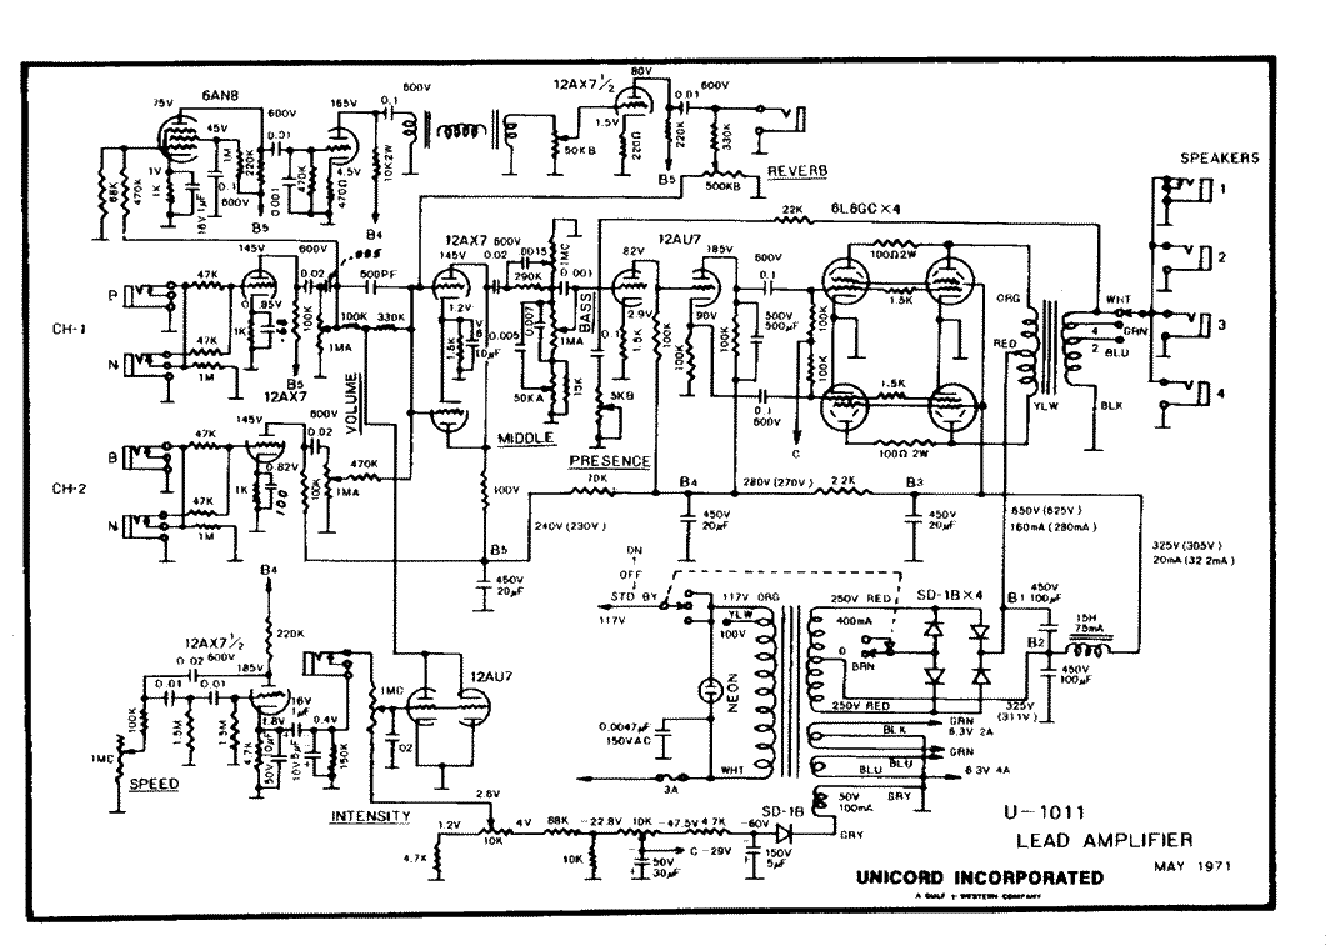 Univox Wiring Diagrams Complete Electrical Diagram Symbols Automotive Guitar Danelectro Aria Pro Ii Rh Banyan Palace Com